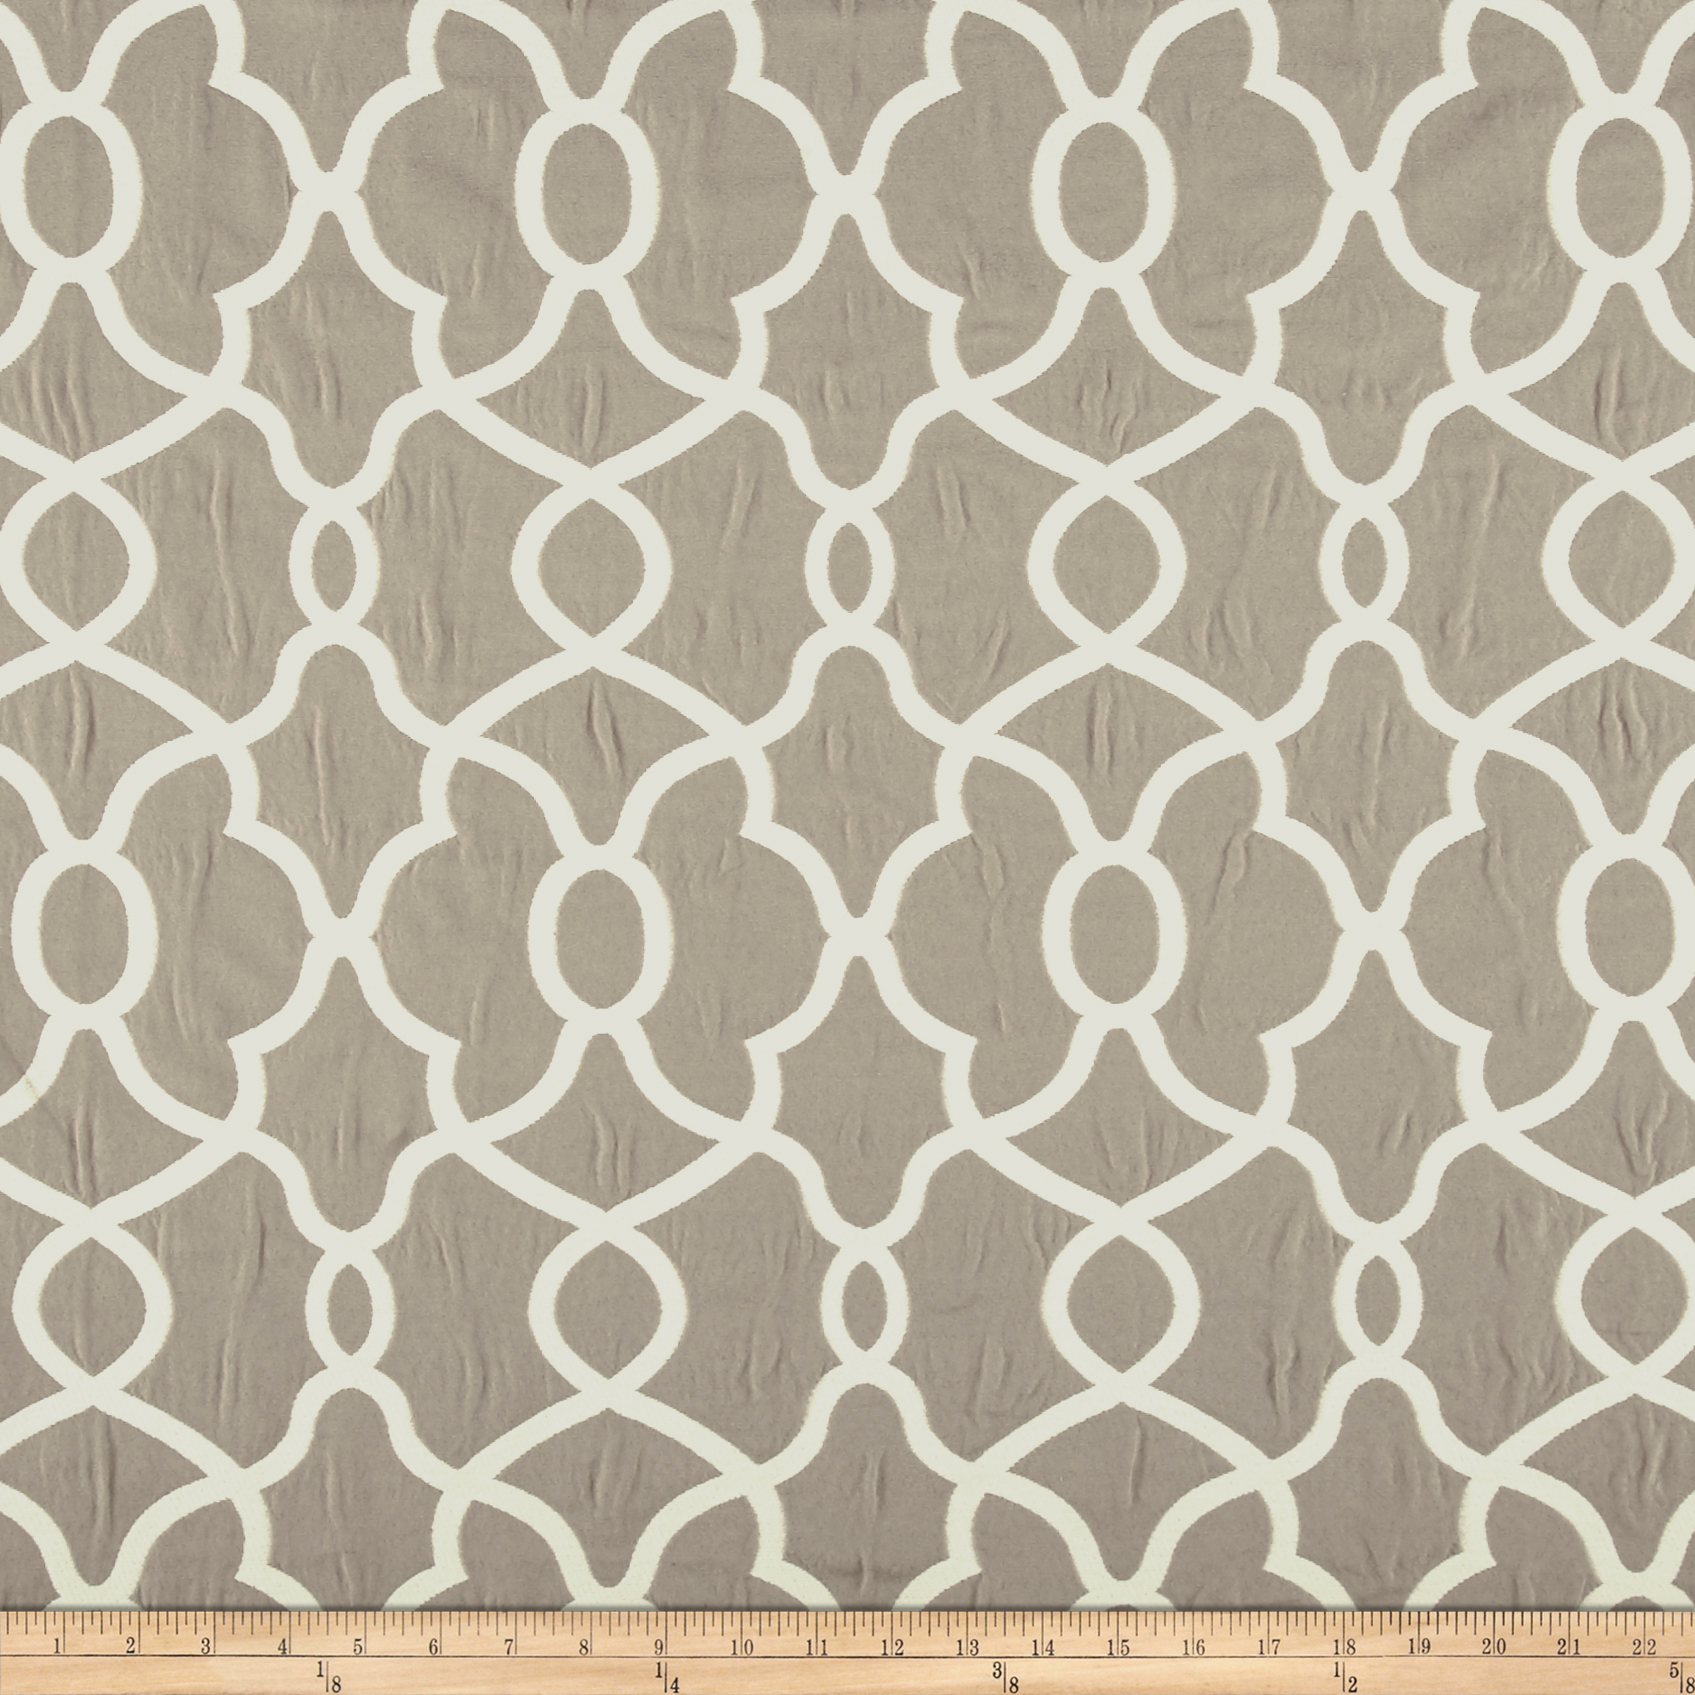 Kelly Ripa Home Clearly Cool Jacquard Stone Fabric by Waverly in USA